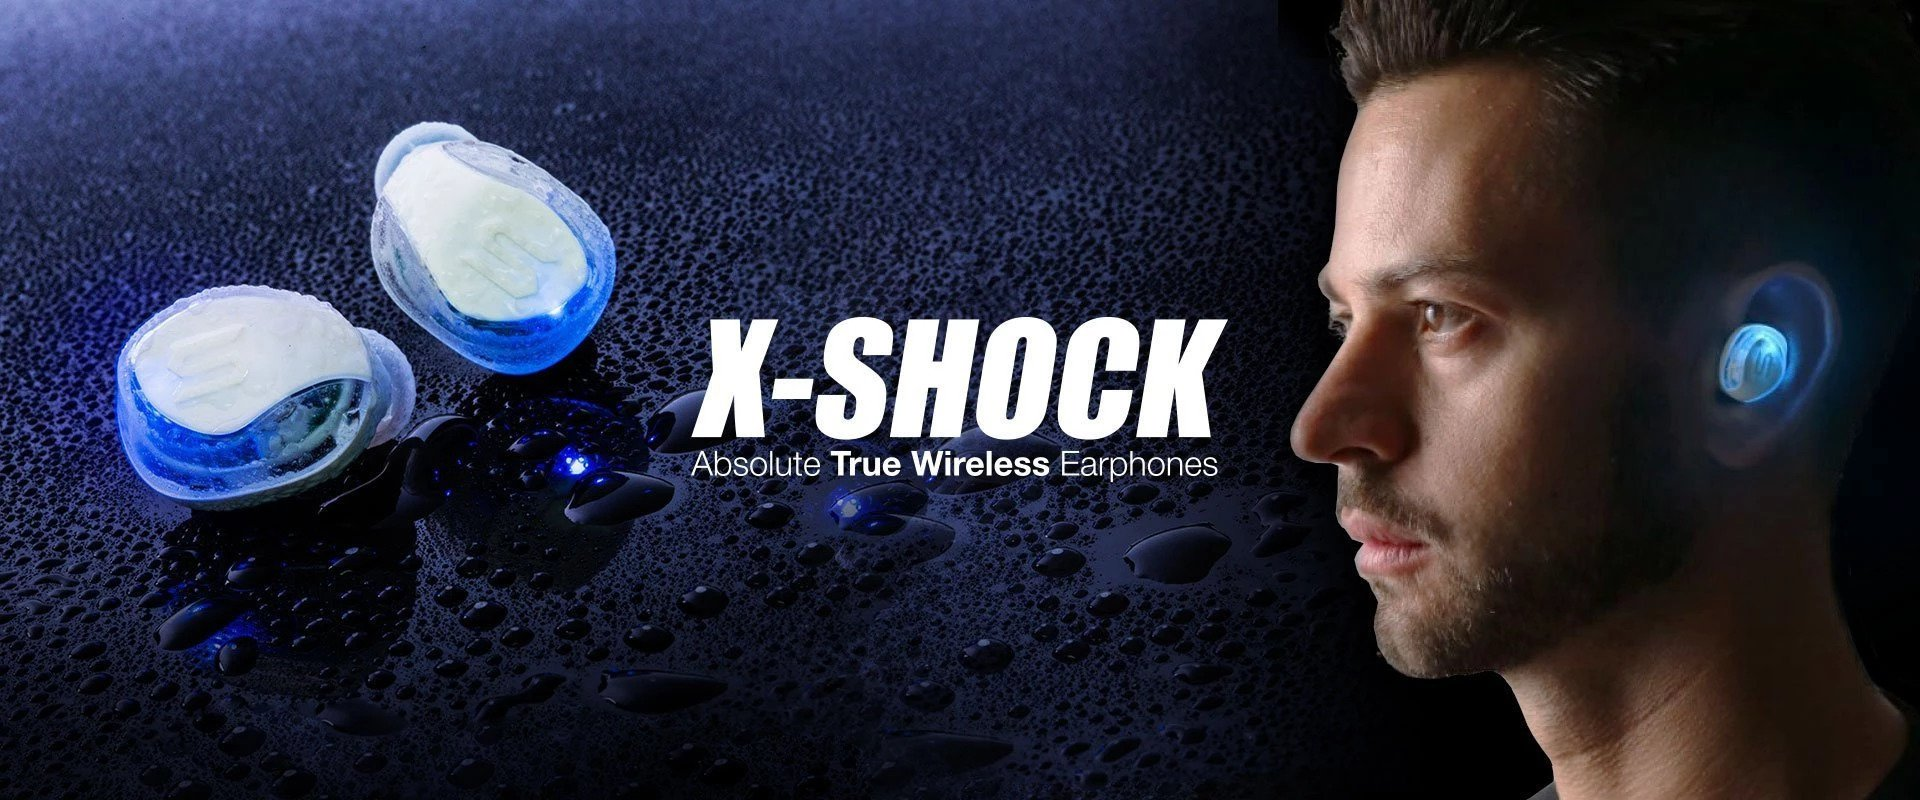 Soul Electronics X-SHOCK True Wireless Sports Earphones